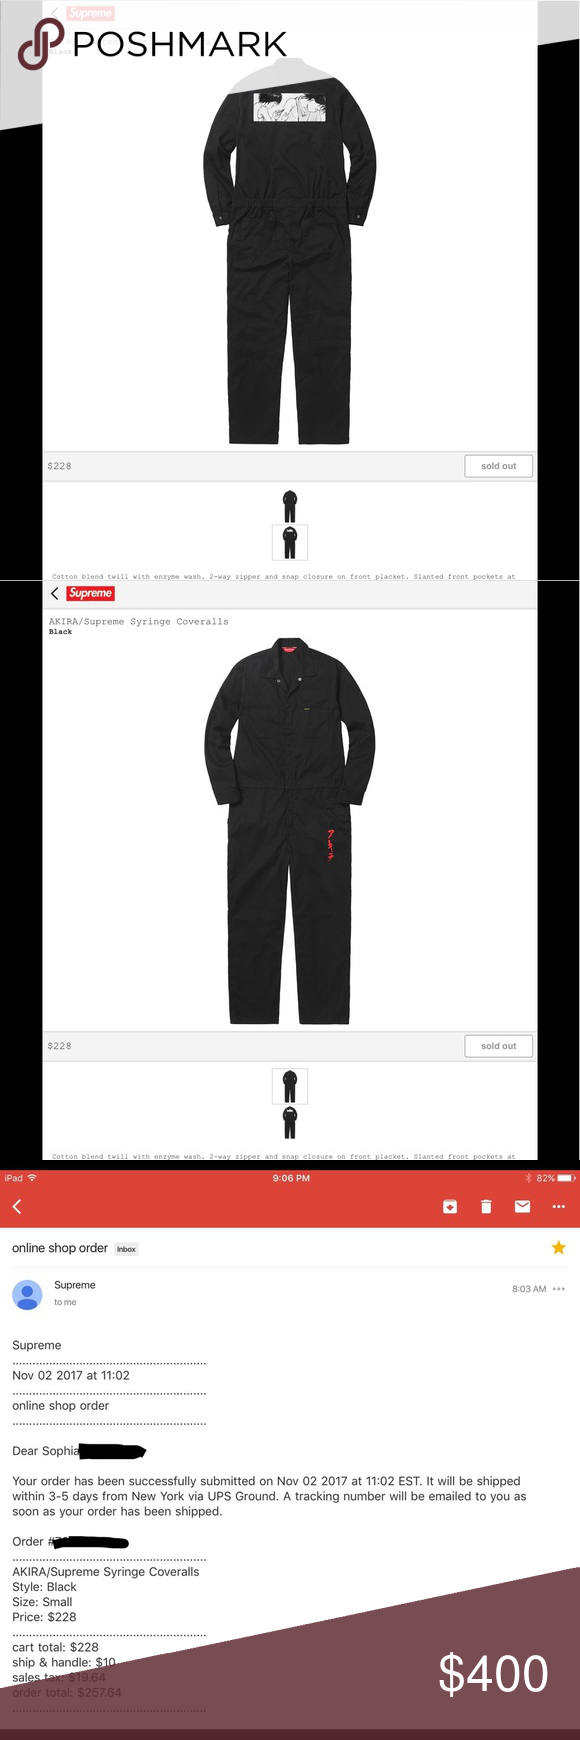 outlet store 7d9da a6135 ... CONFIRMED AKIRA SUPREME COVERALLS S Will ship out the week of 112617 ...